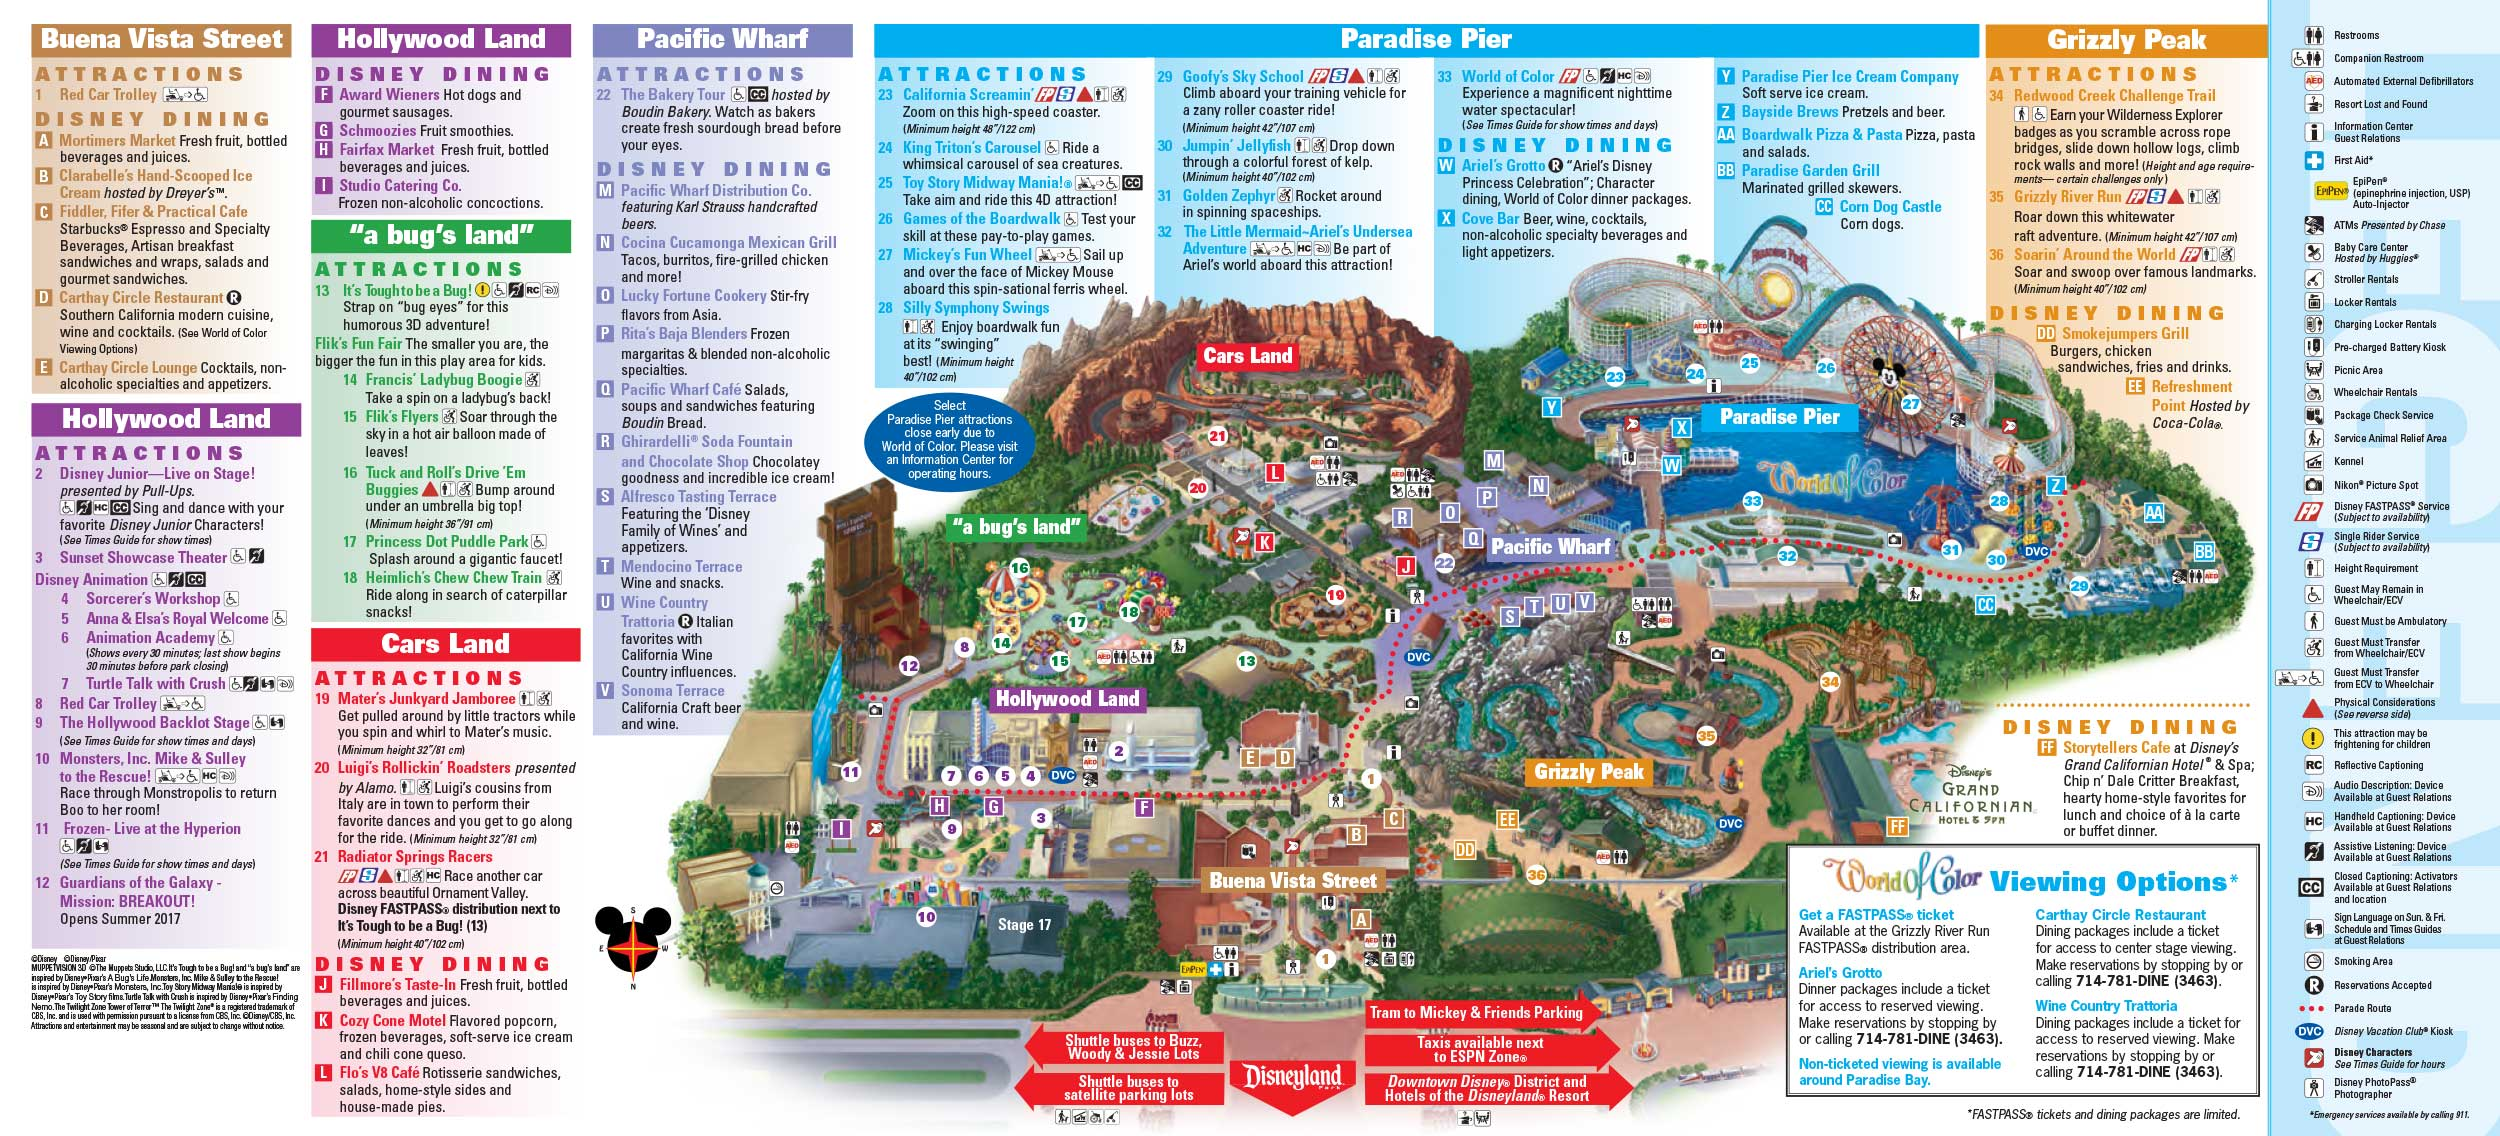 Printable Disneyland Map Disneyland Park Map in California, Map of Disneyland Printable Disneyland Map